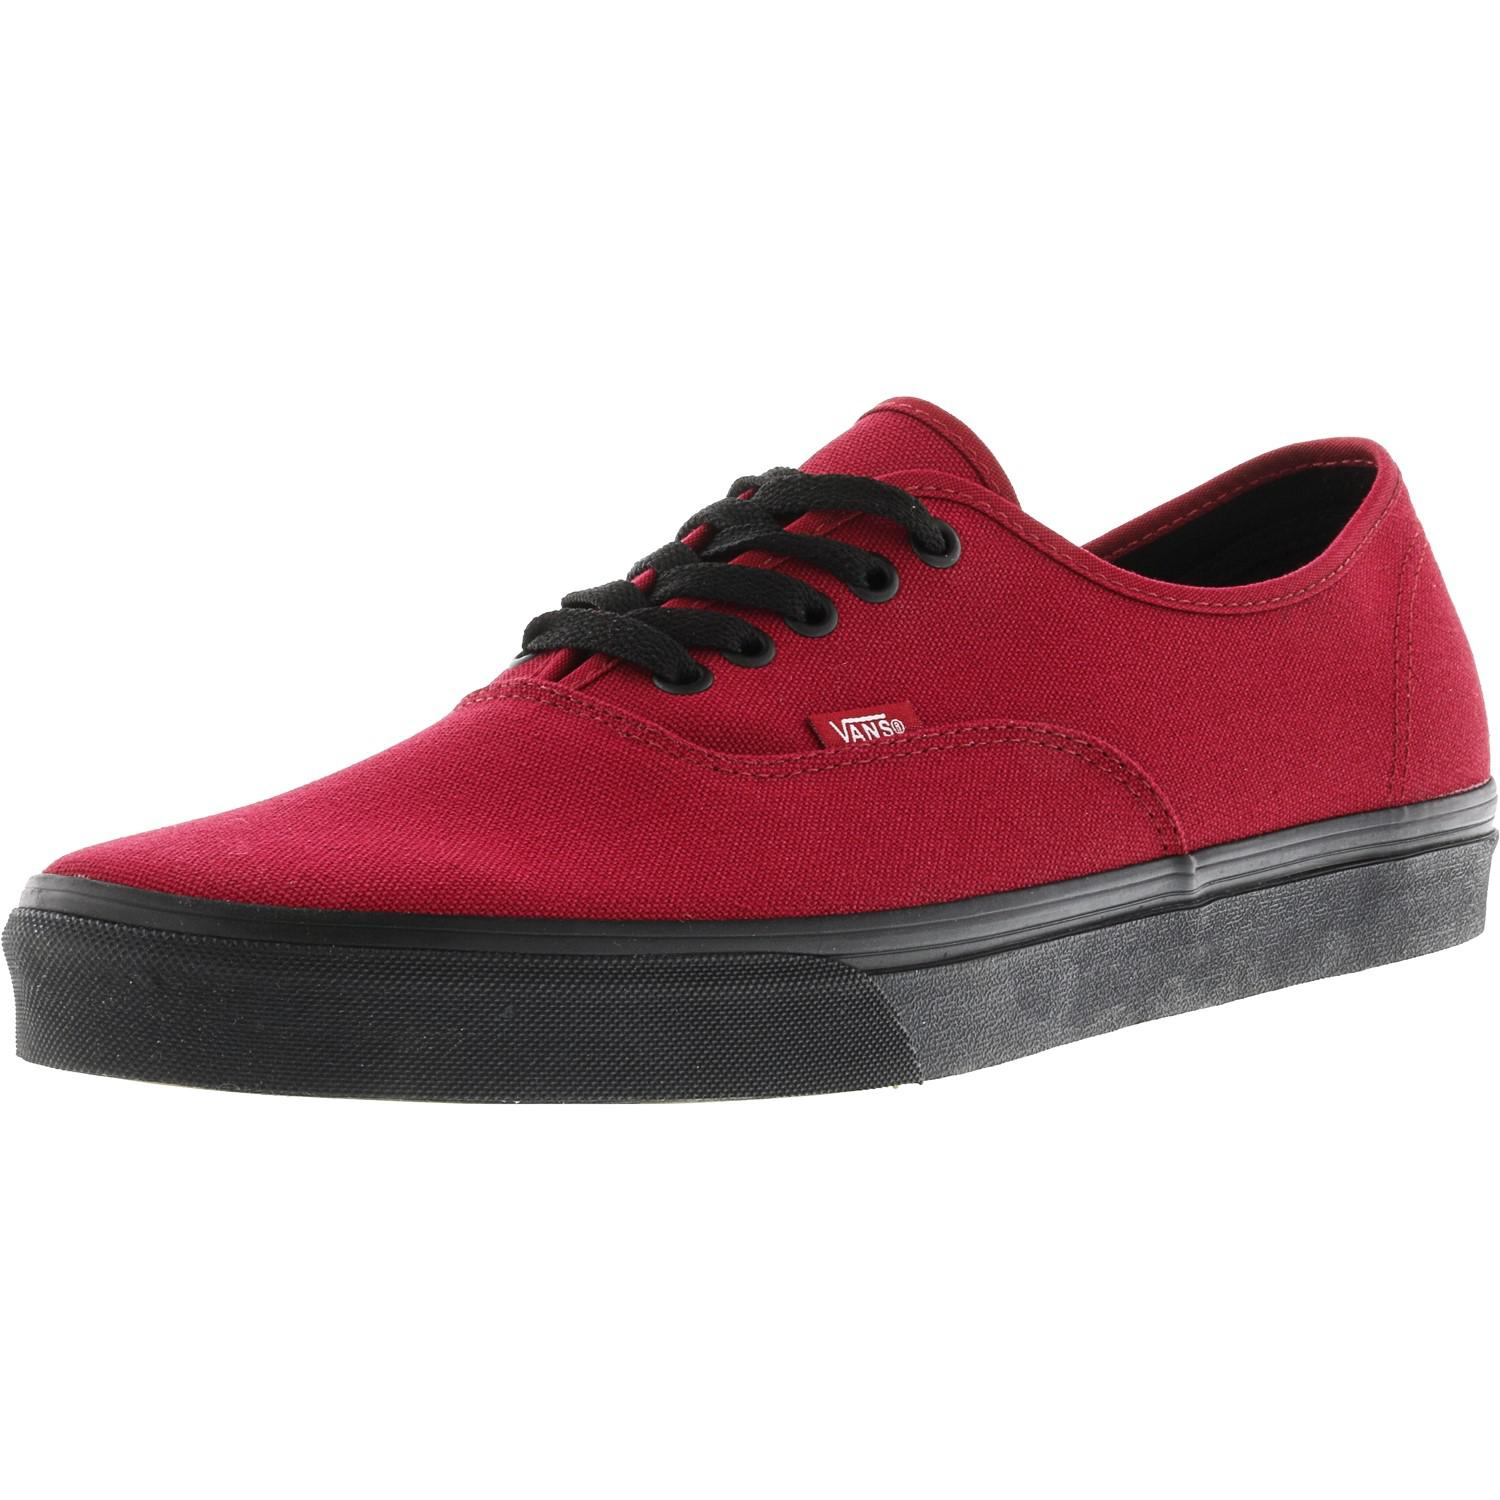 1d5db95f15 Lyst - Vans Authentic Black Sole Ankle-high Canvas Skateboarding ...